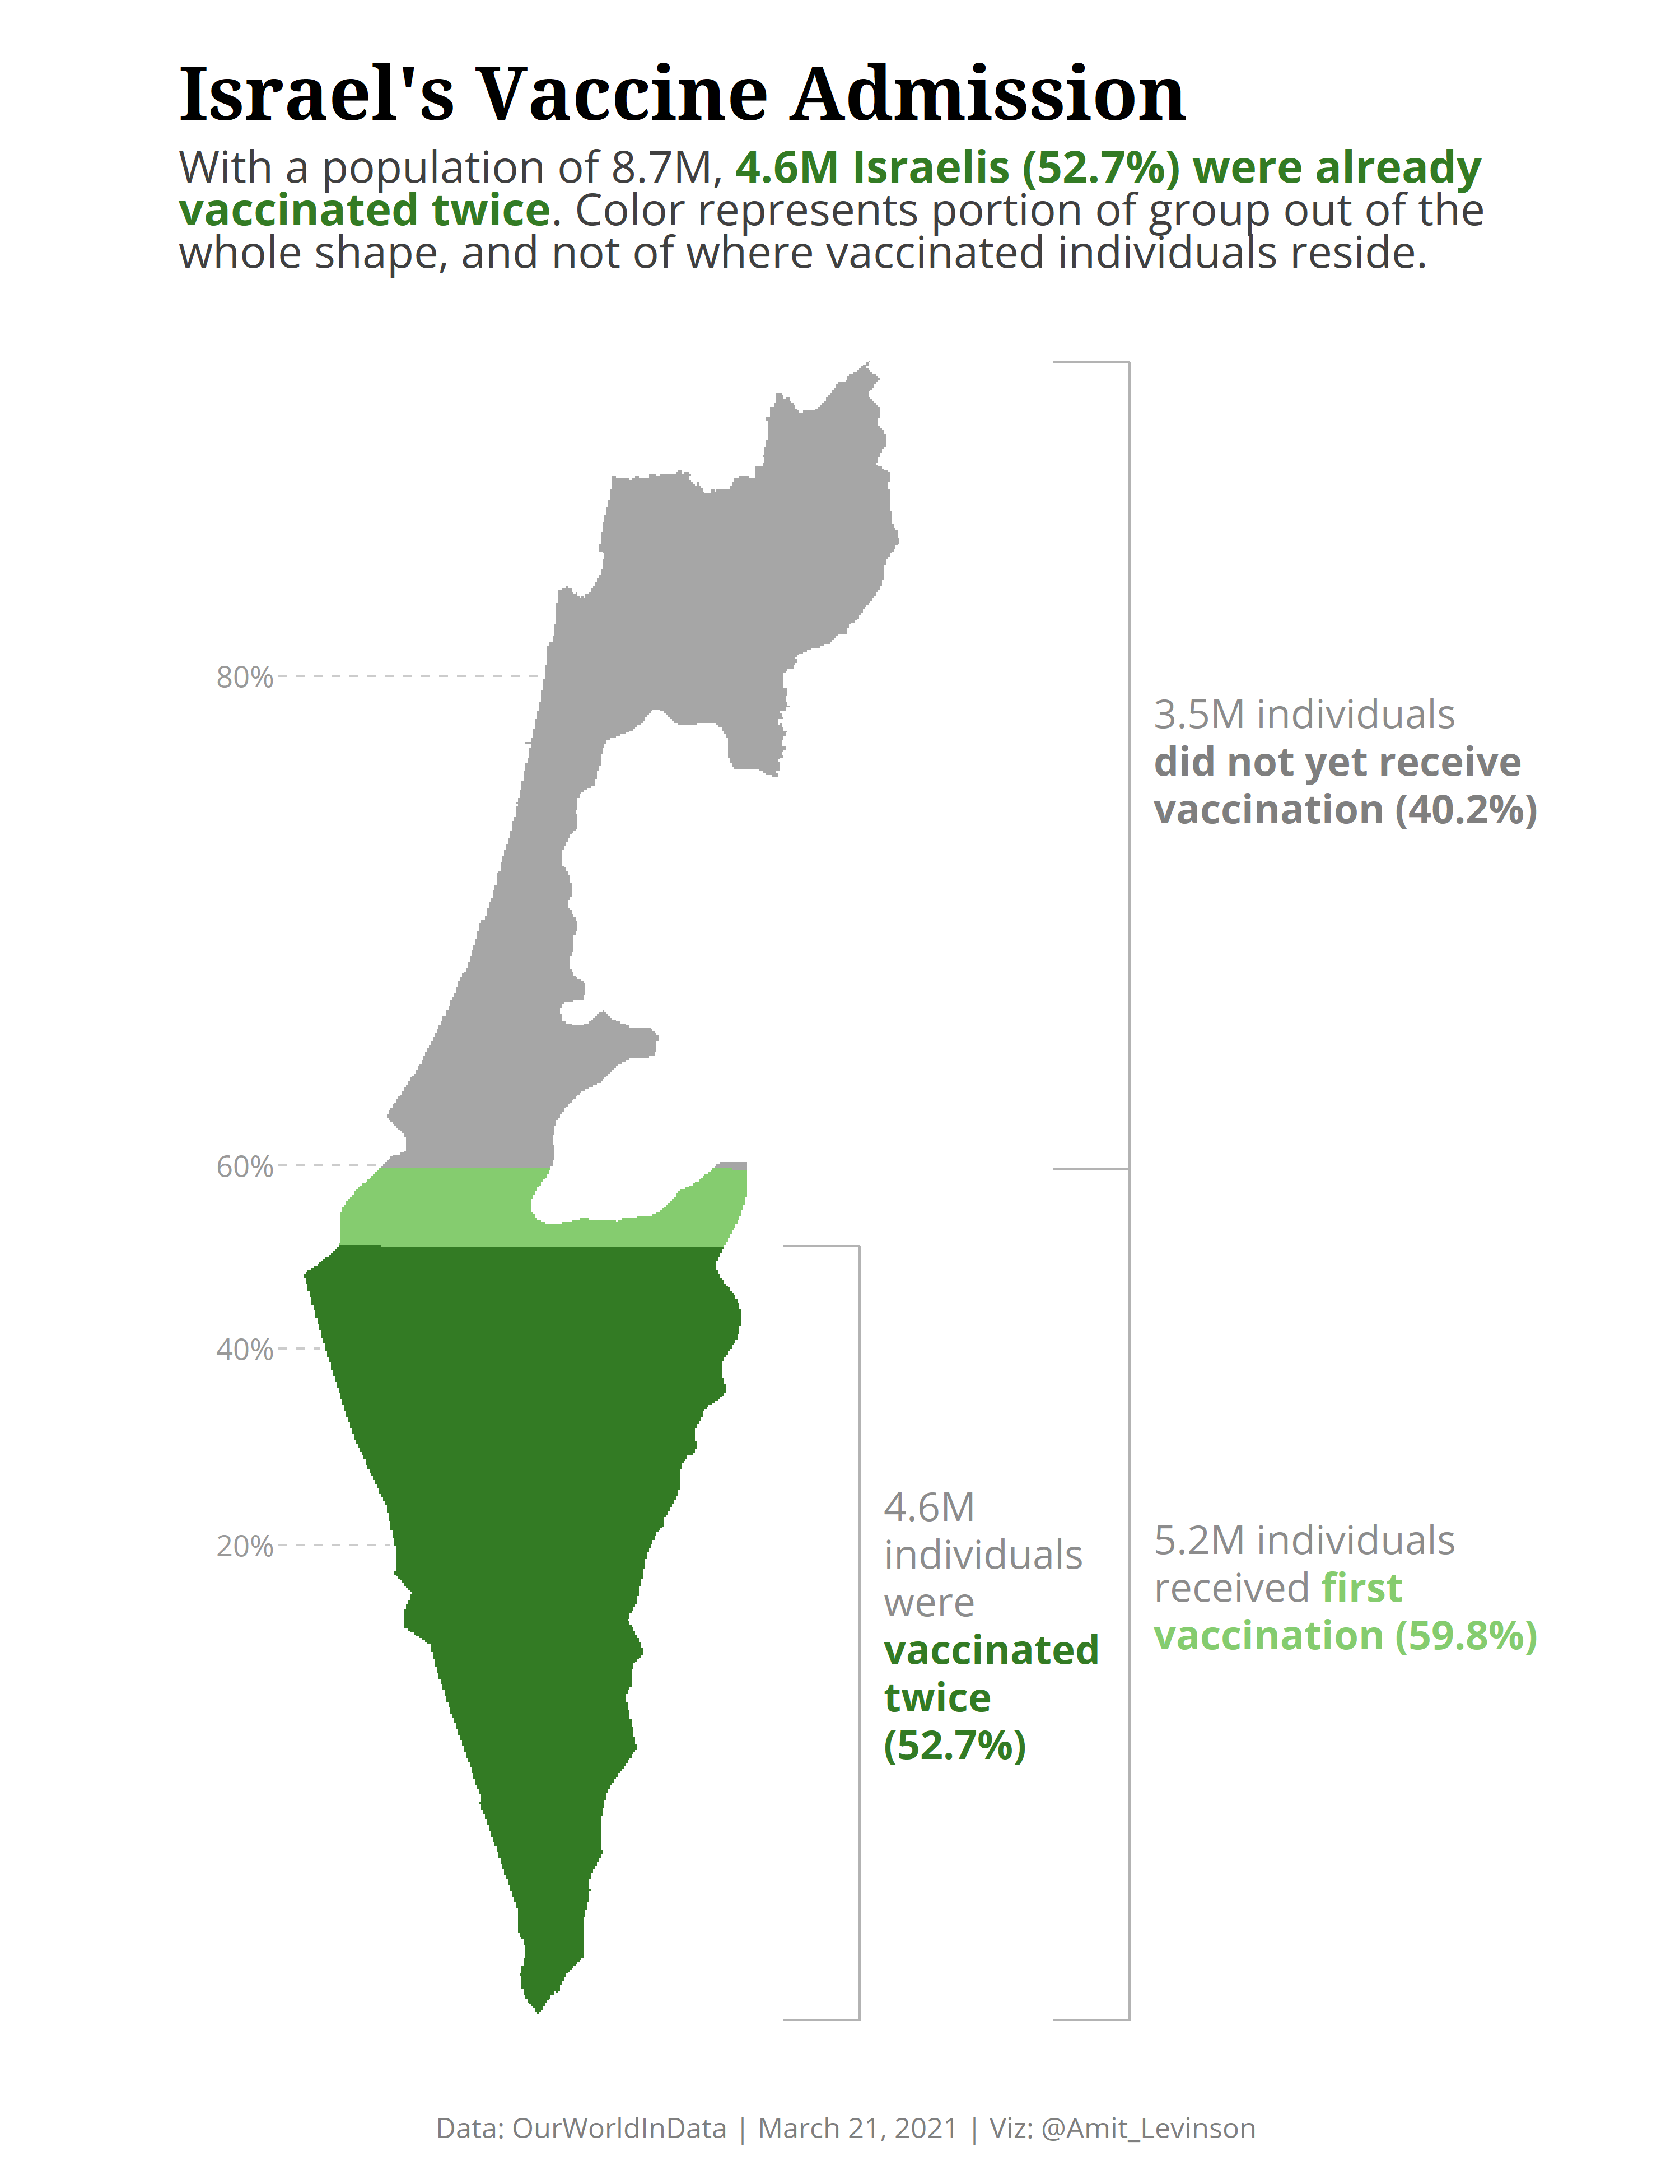 Map of Israel with part of filled representing the number of individuals who vaccinated